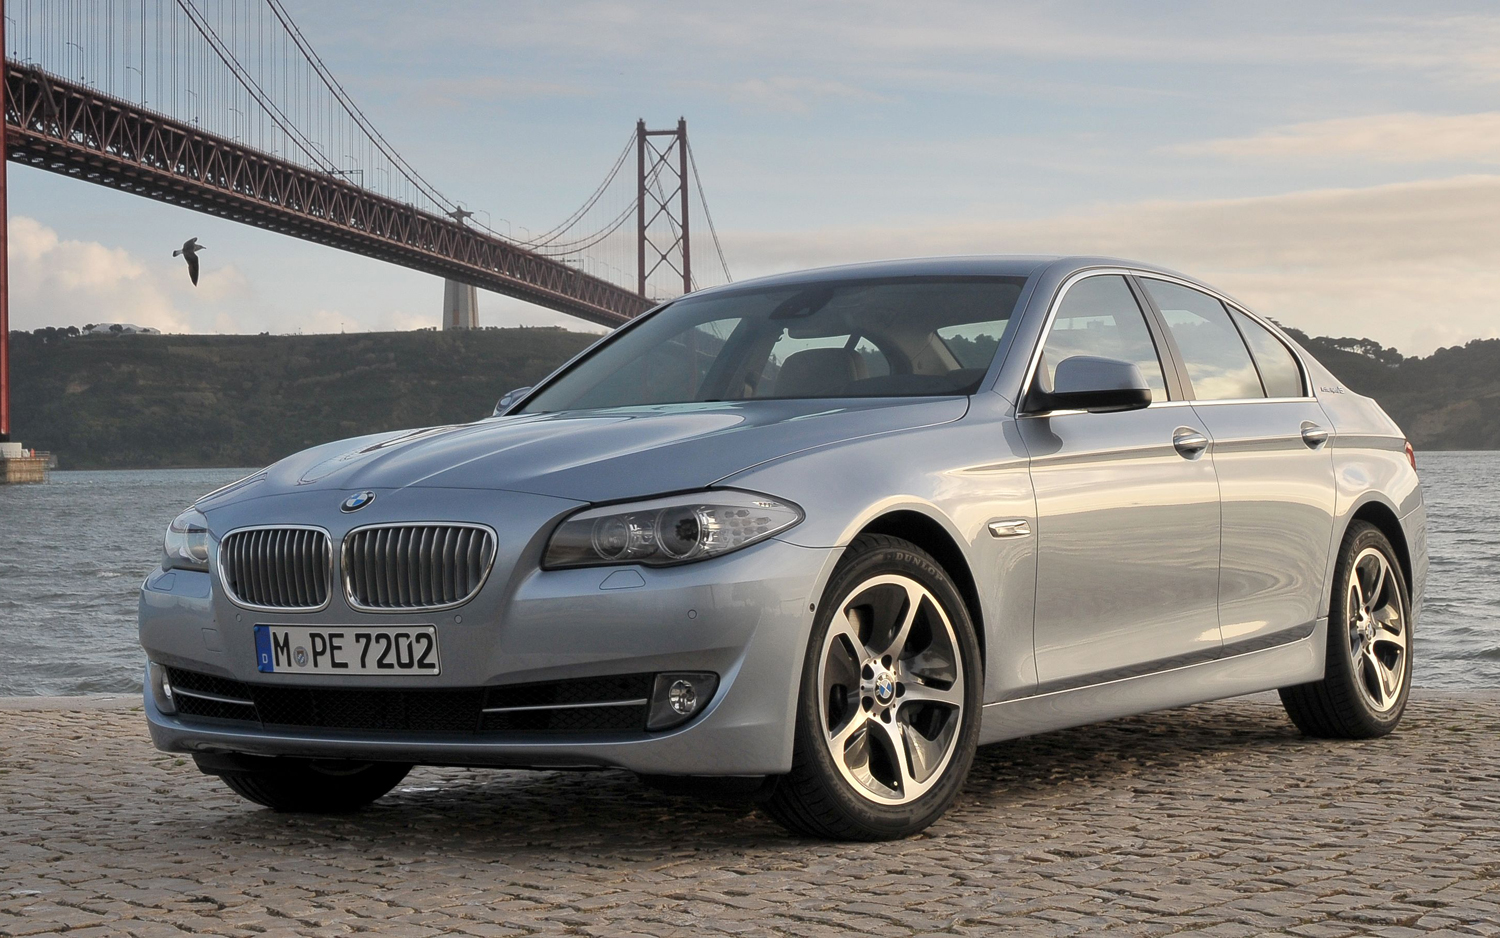 Bmw Activehybrid 5 #7